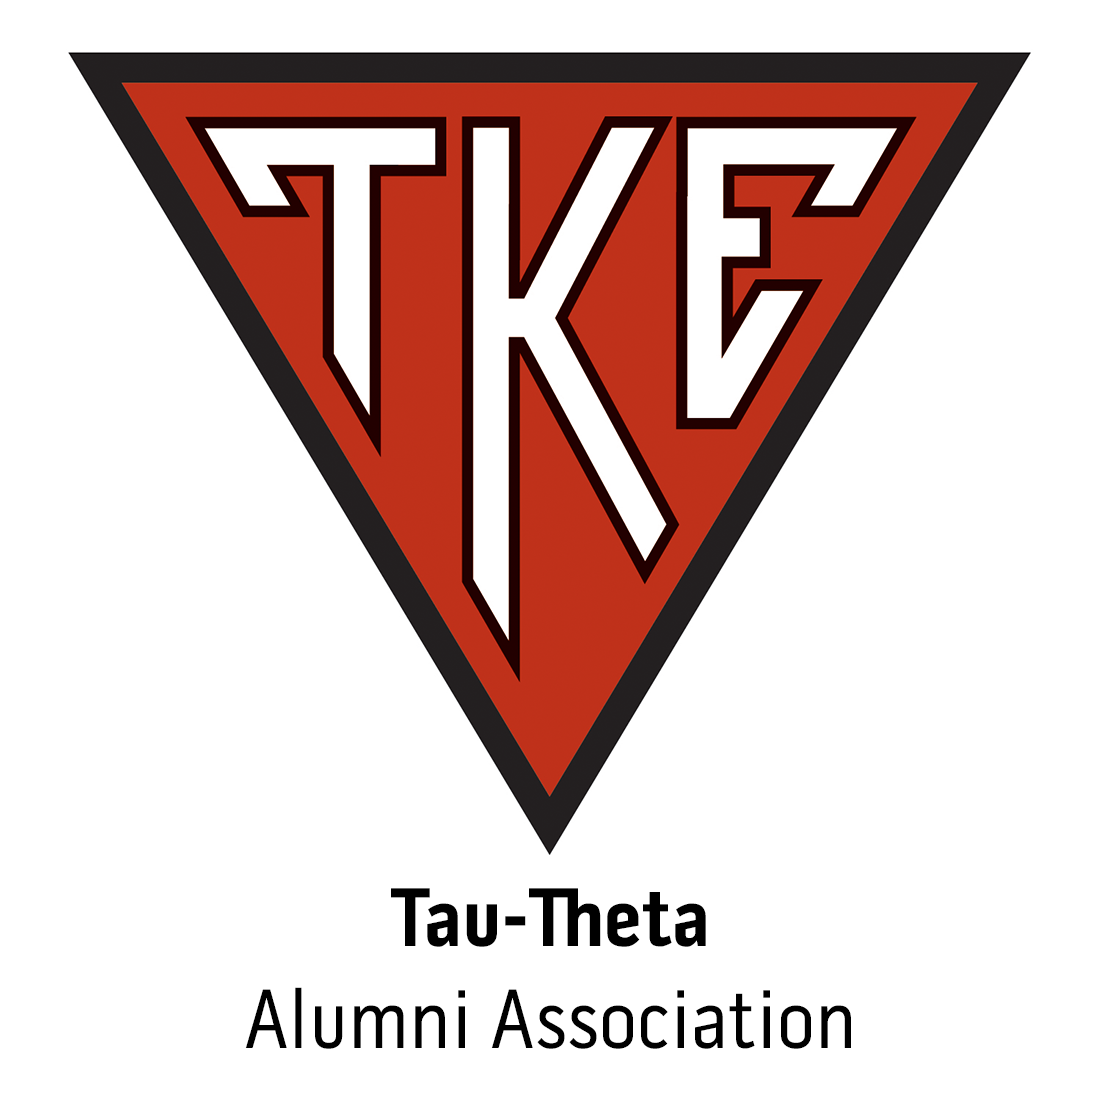 Tau-Theta Alumni Association for Fairleigh Dickinson University, Madison